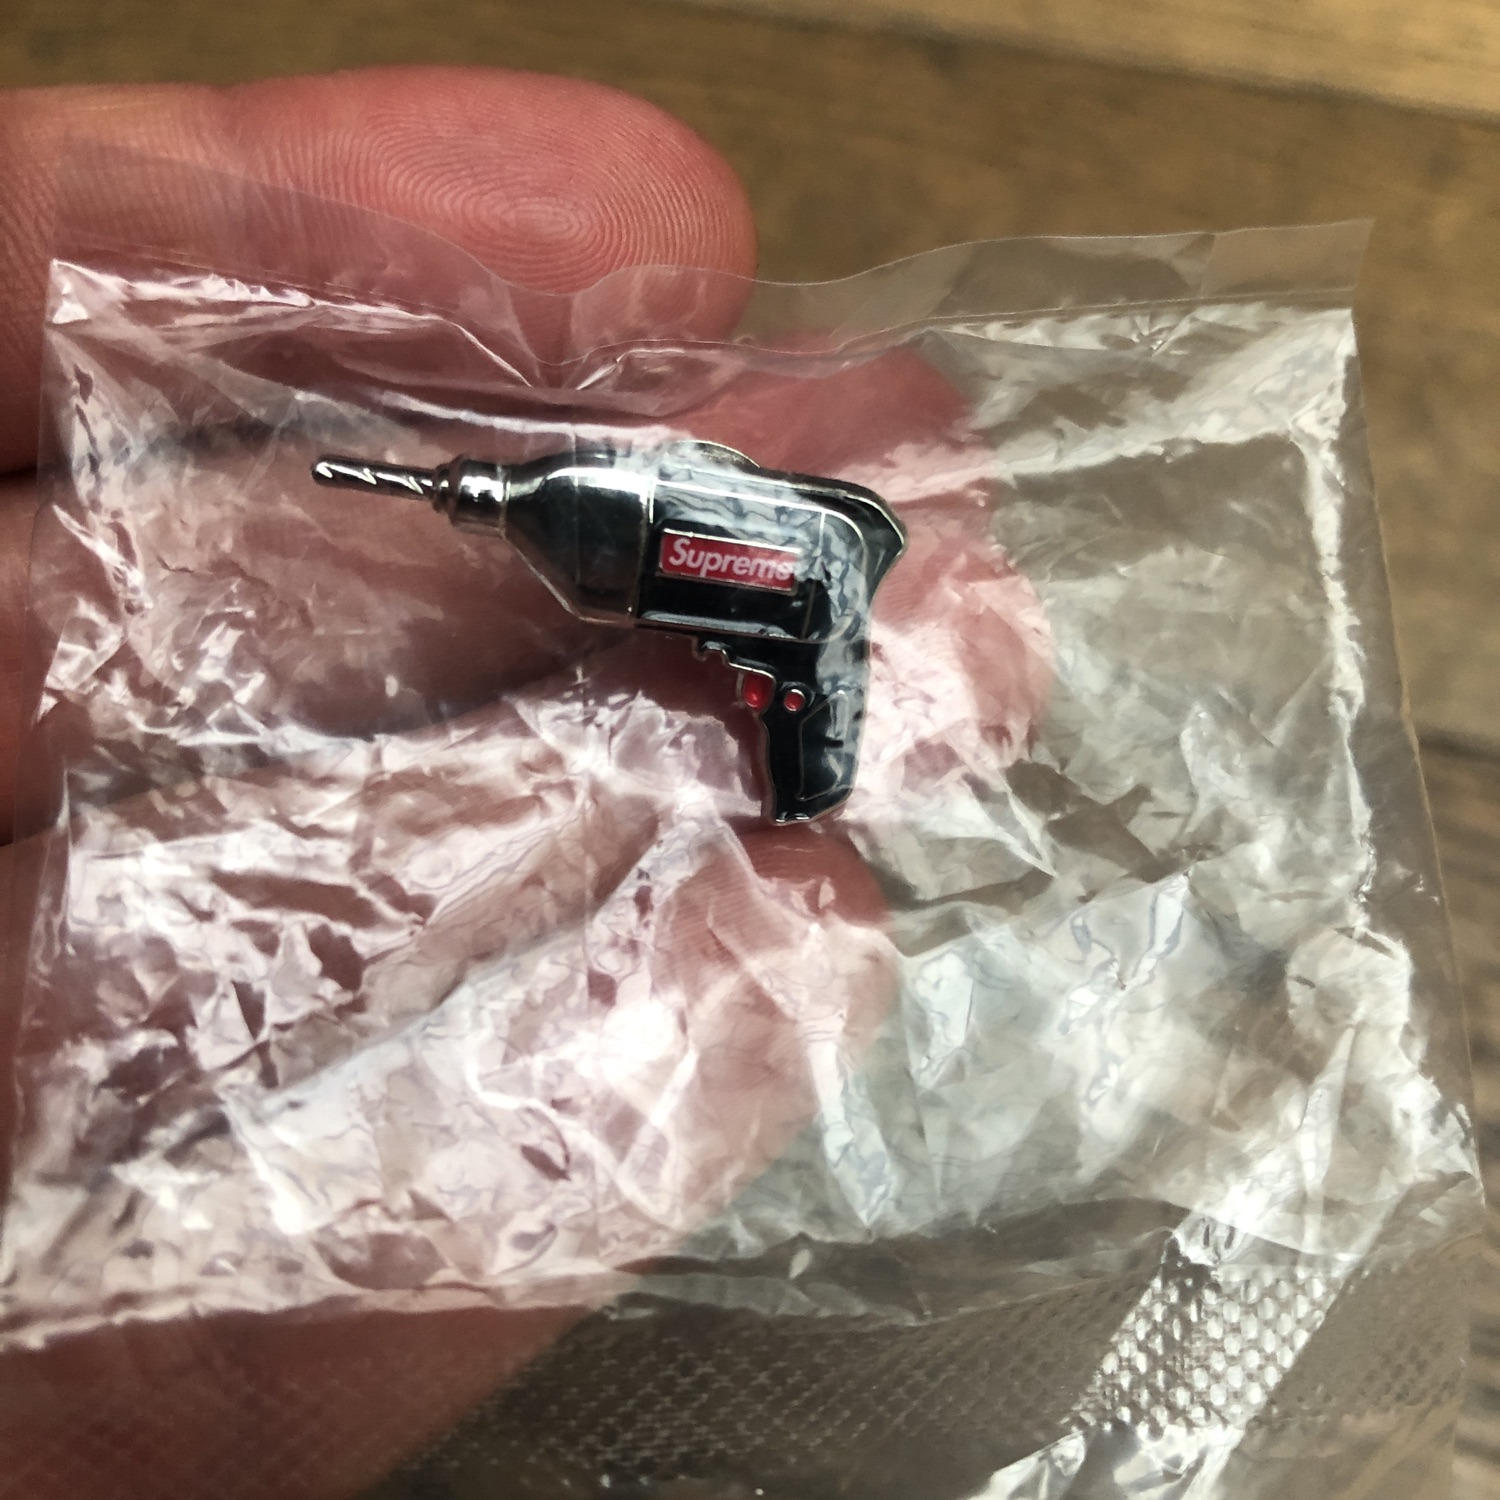 Supreme Power Drill Pin Black